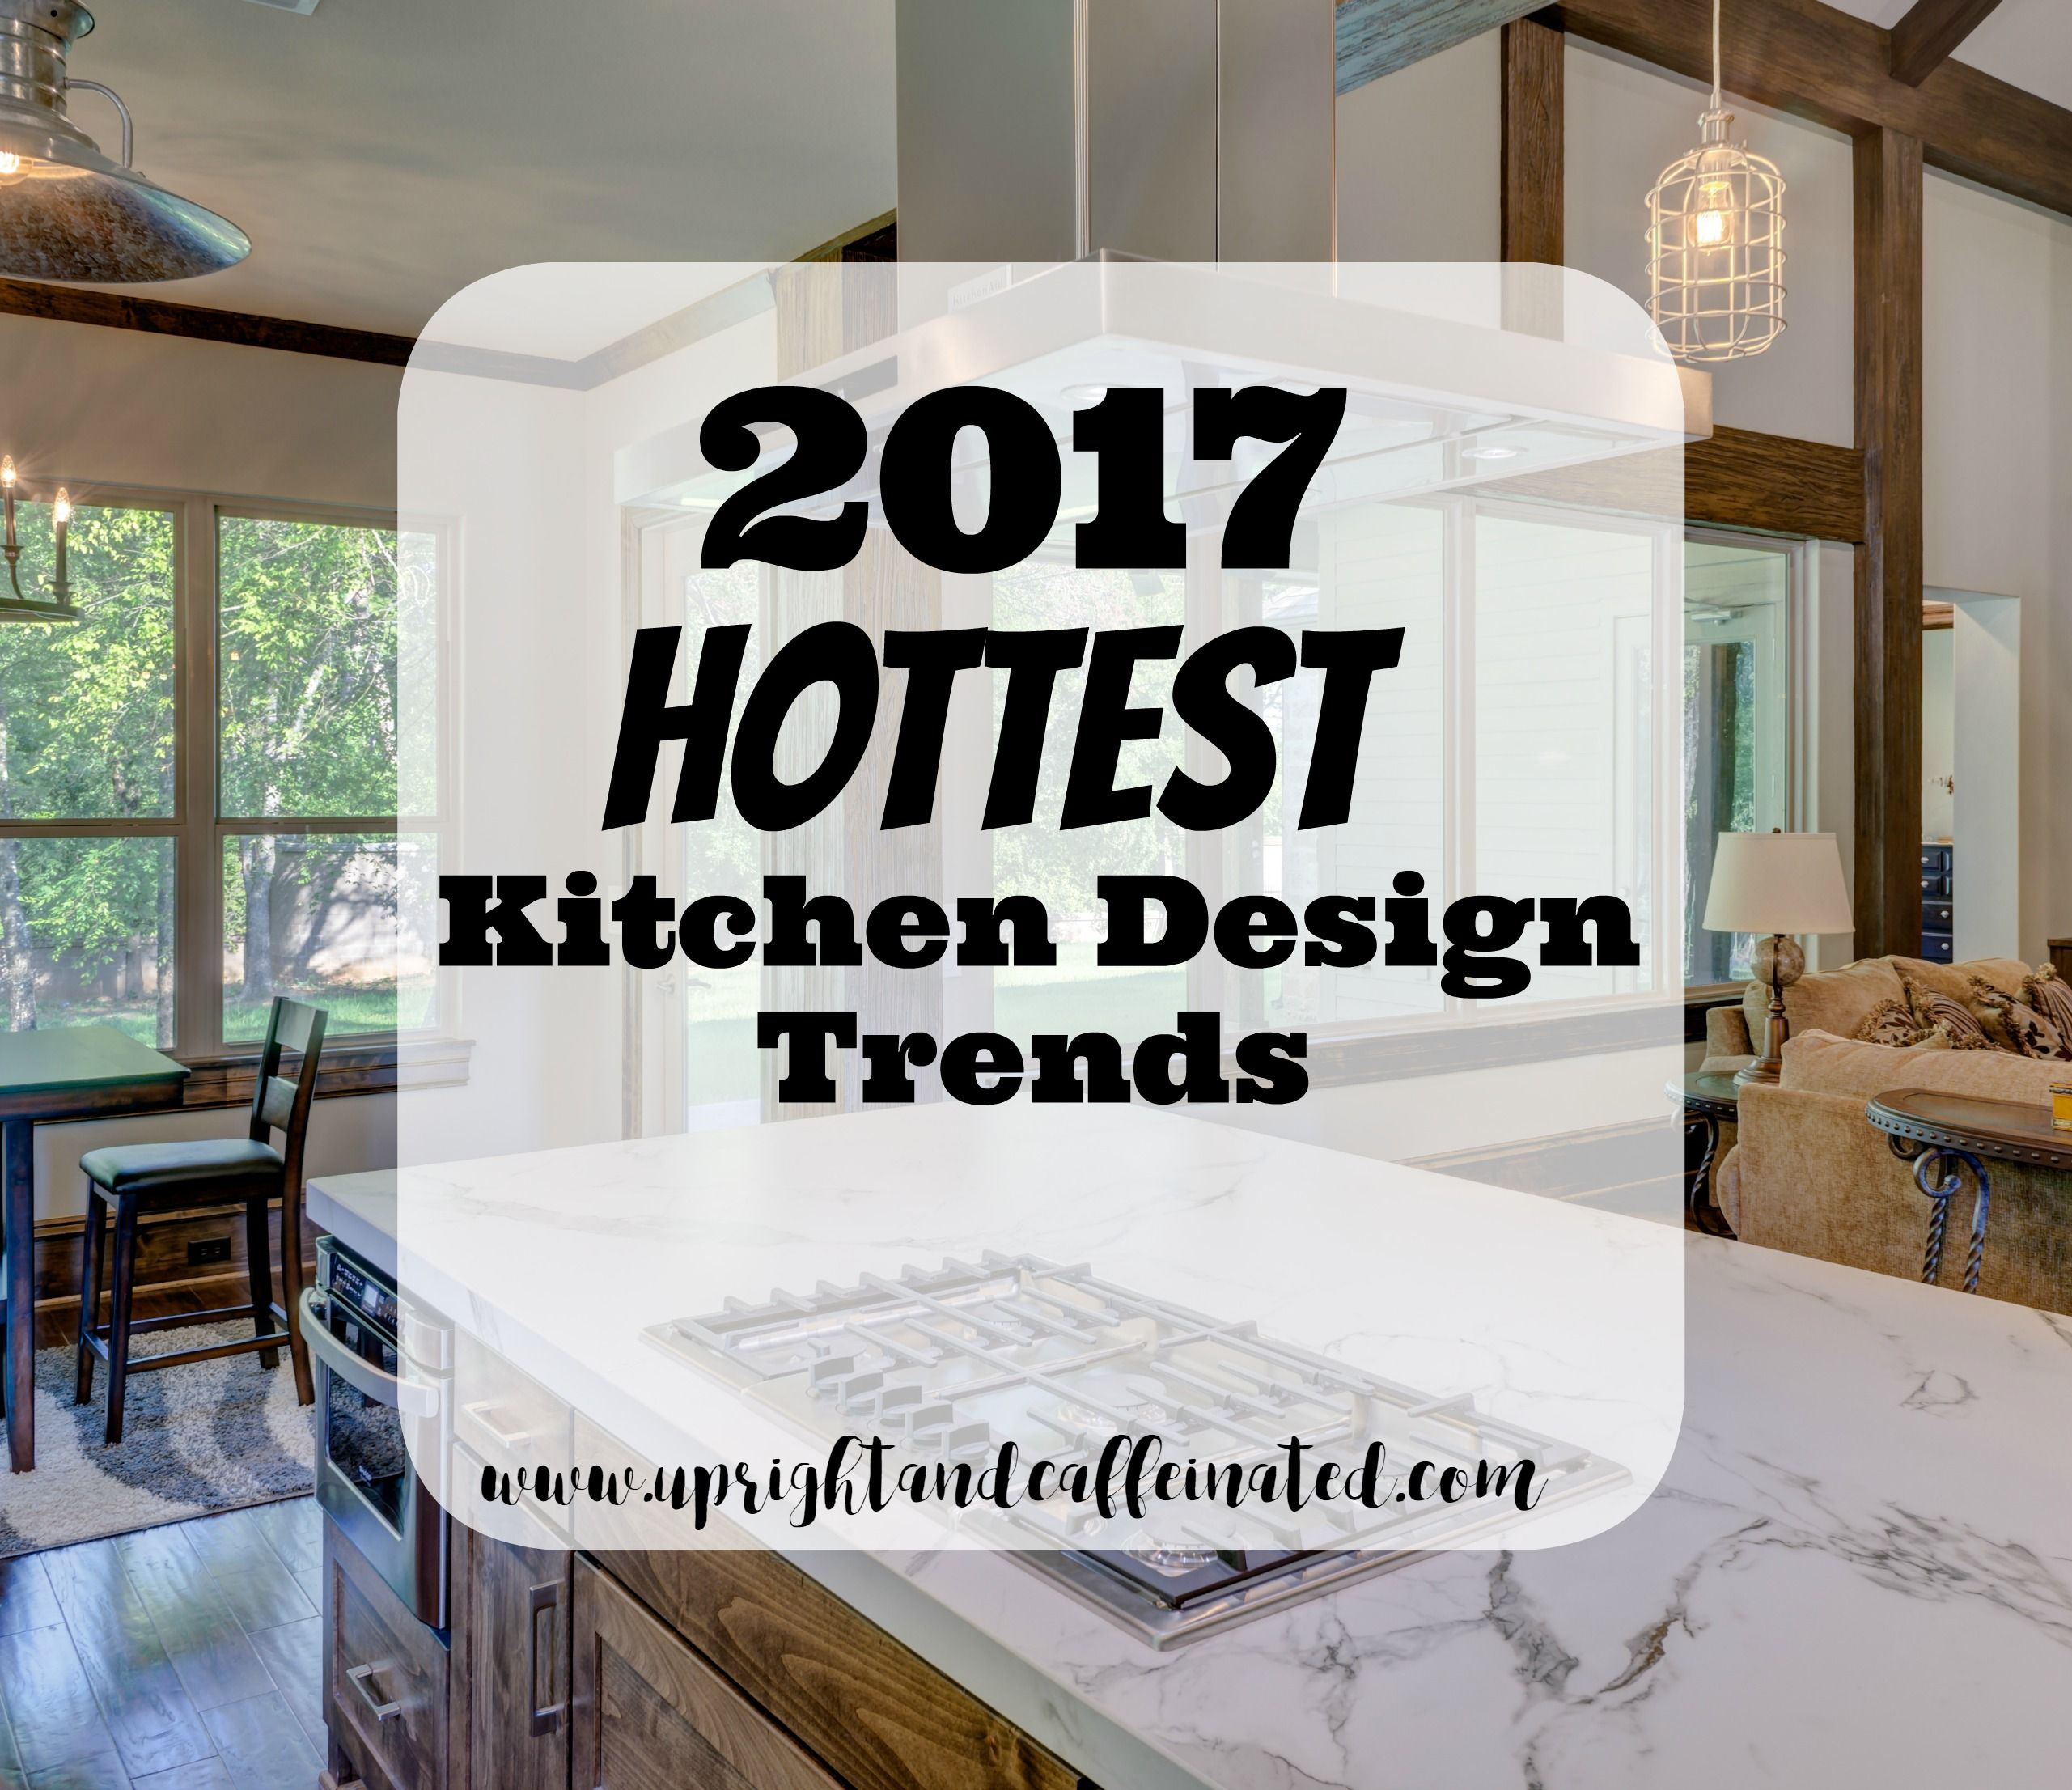 2017 Hottest Kitchen Trends | Pinterest